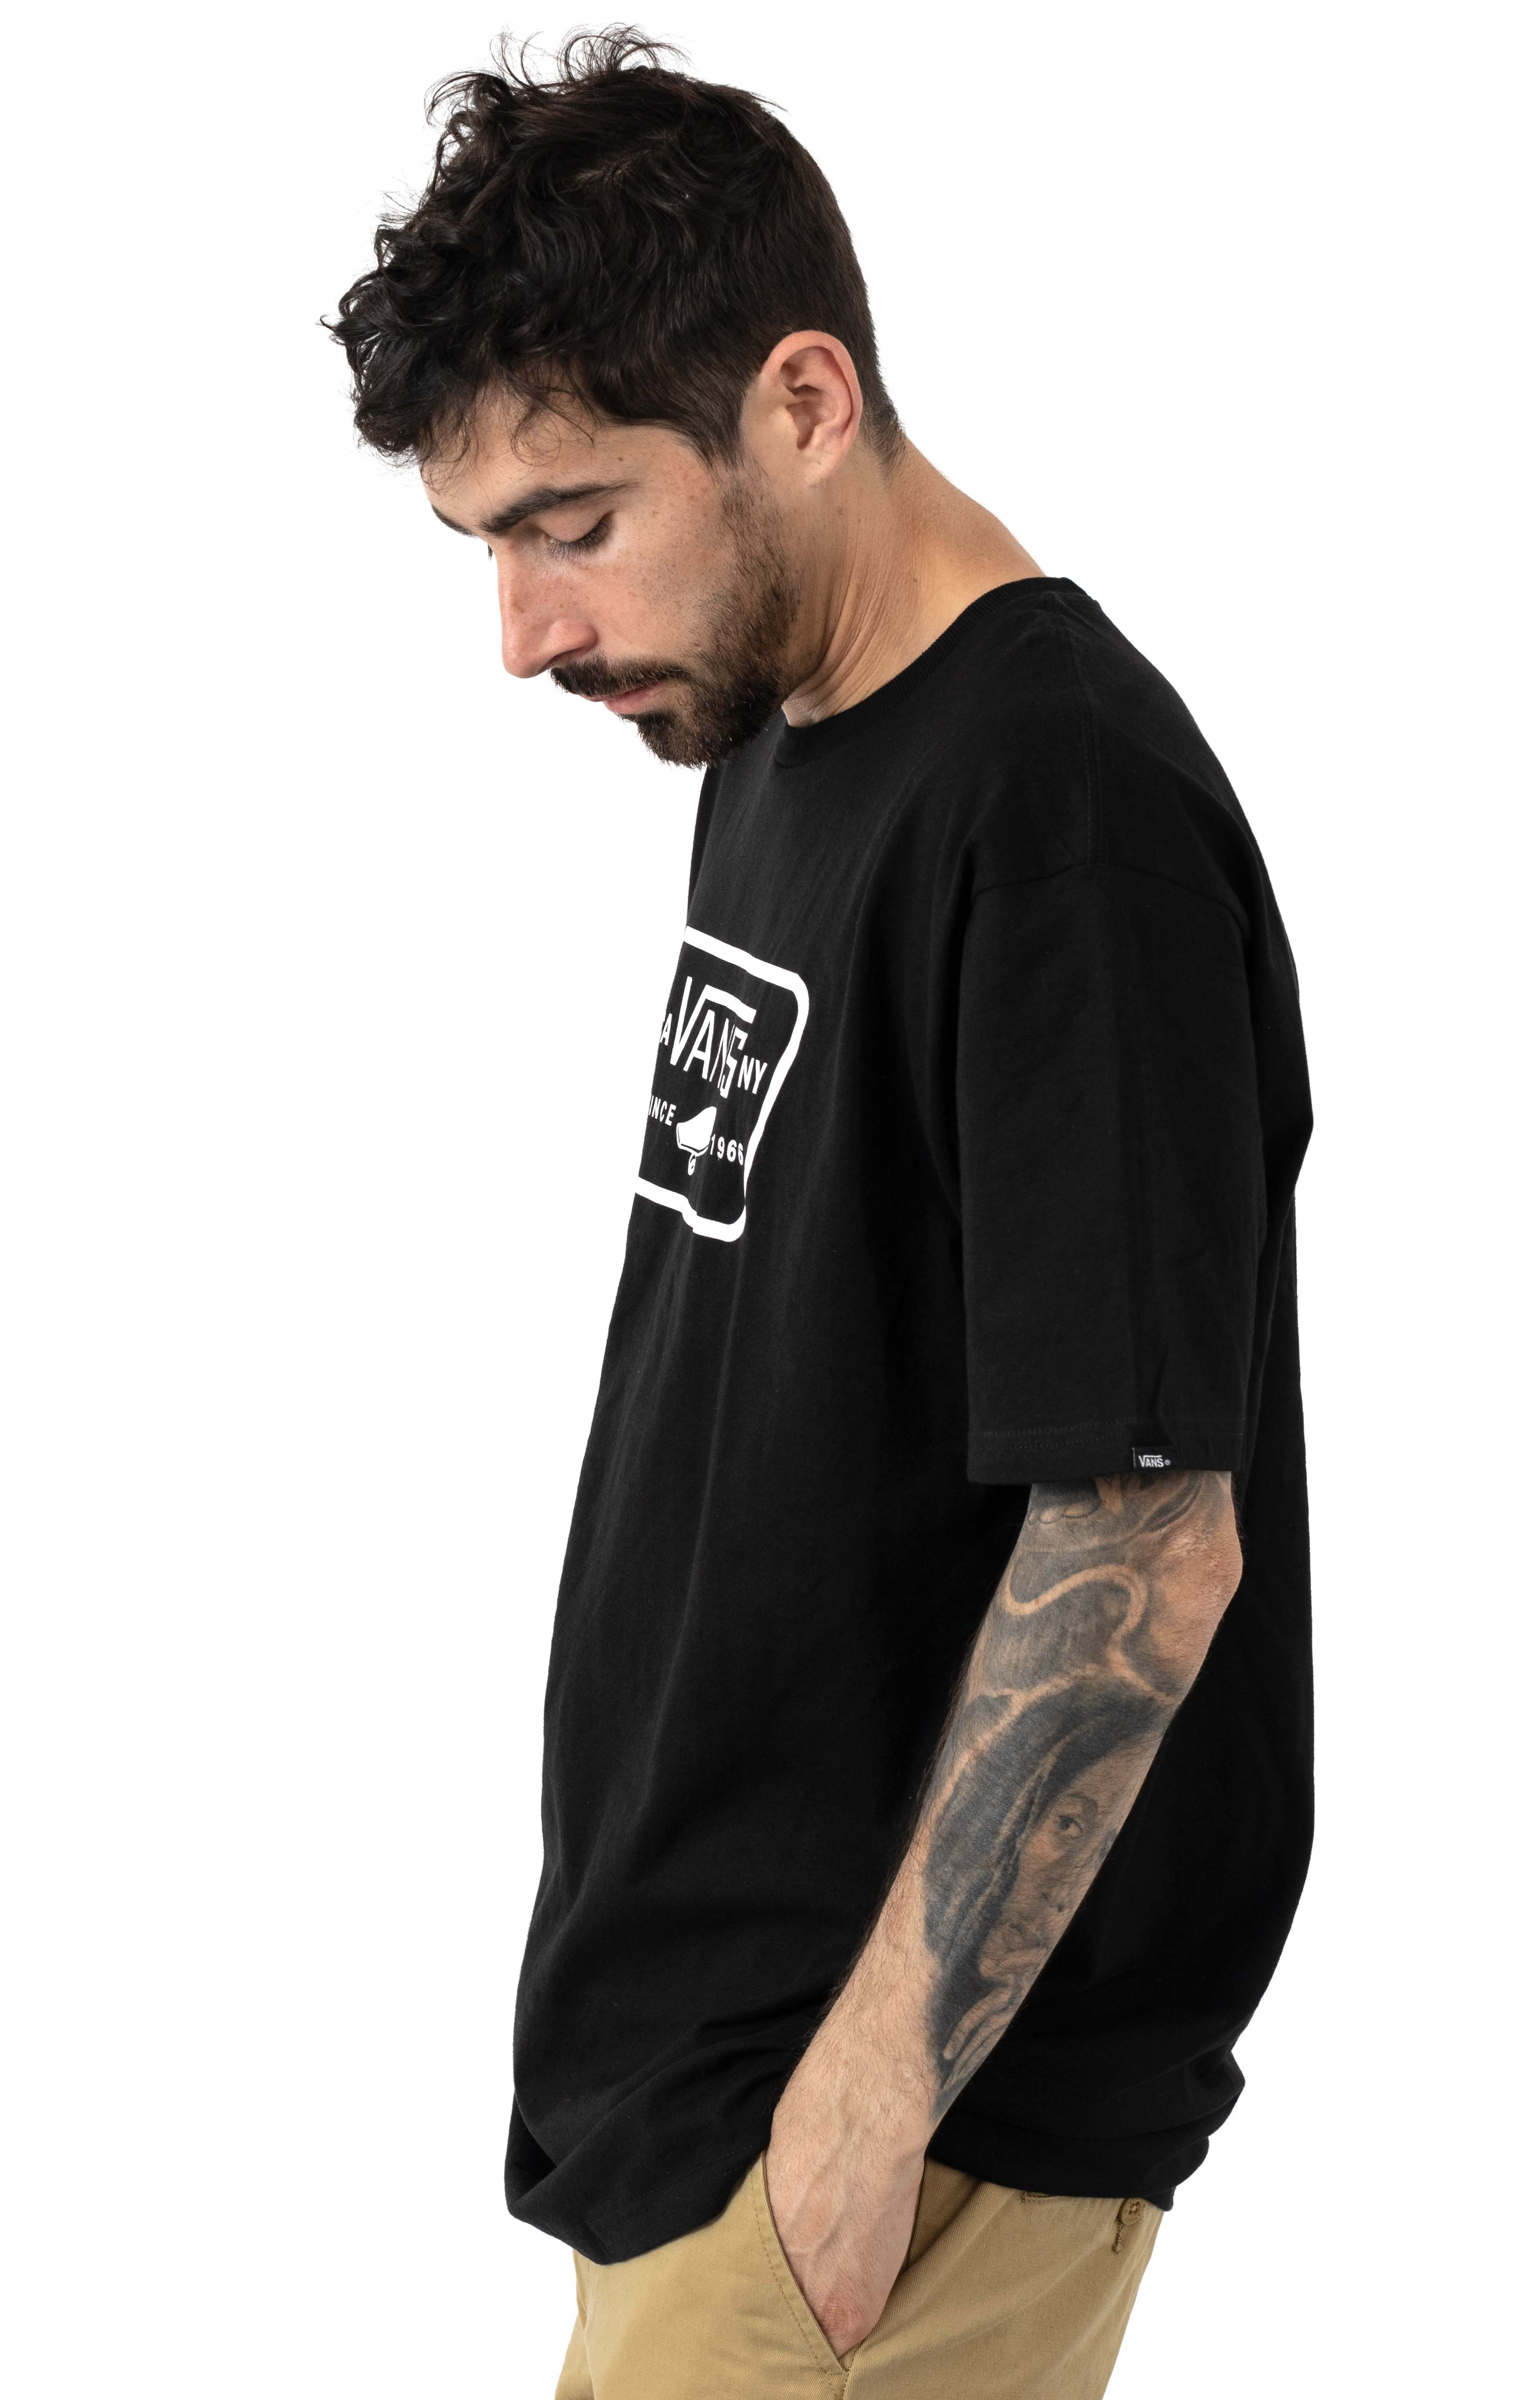 Full Patch T-Shirt - Black/White 2